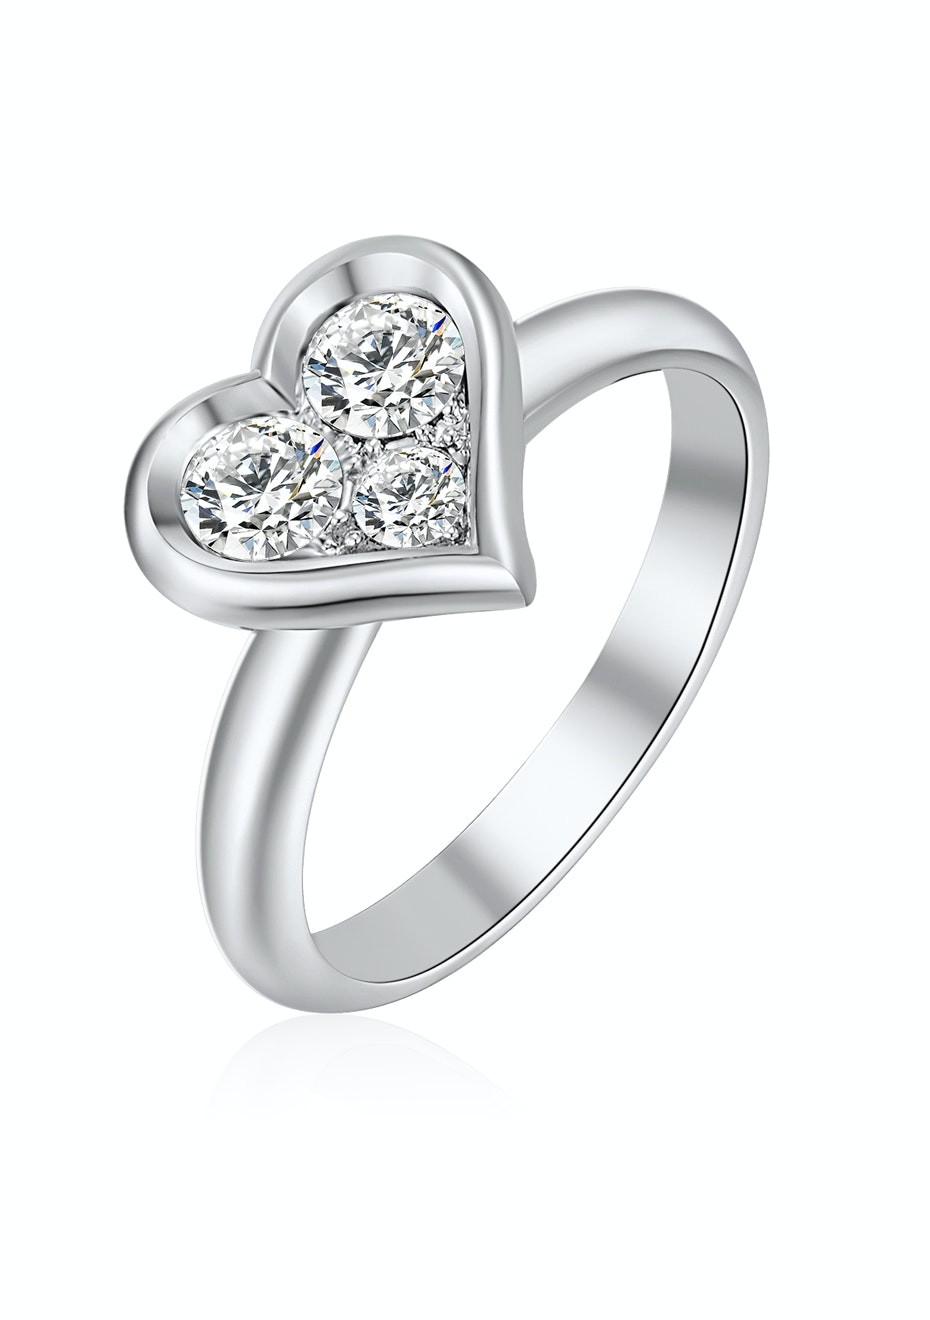 Heart Tri-stone ring Embellished with Crystals from Swarovski